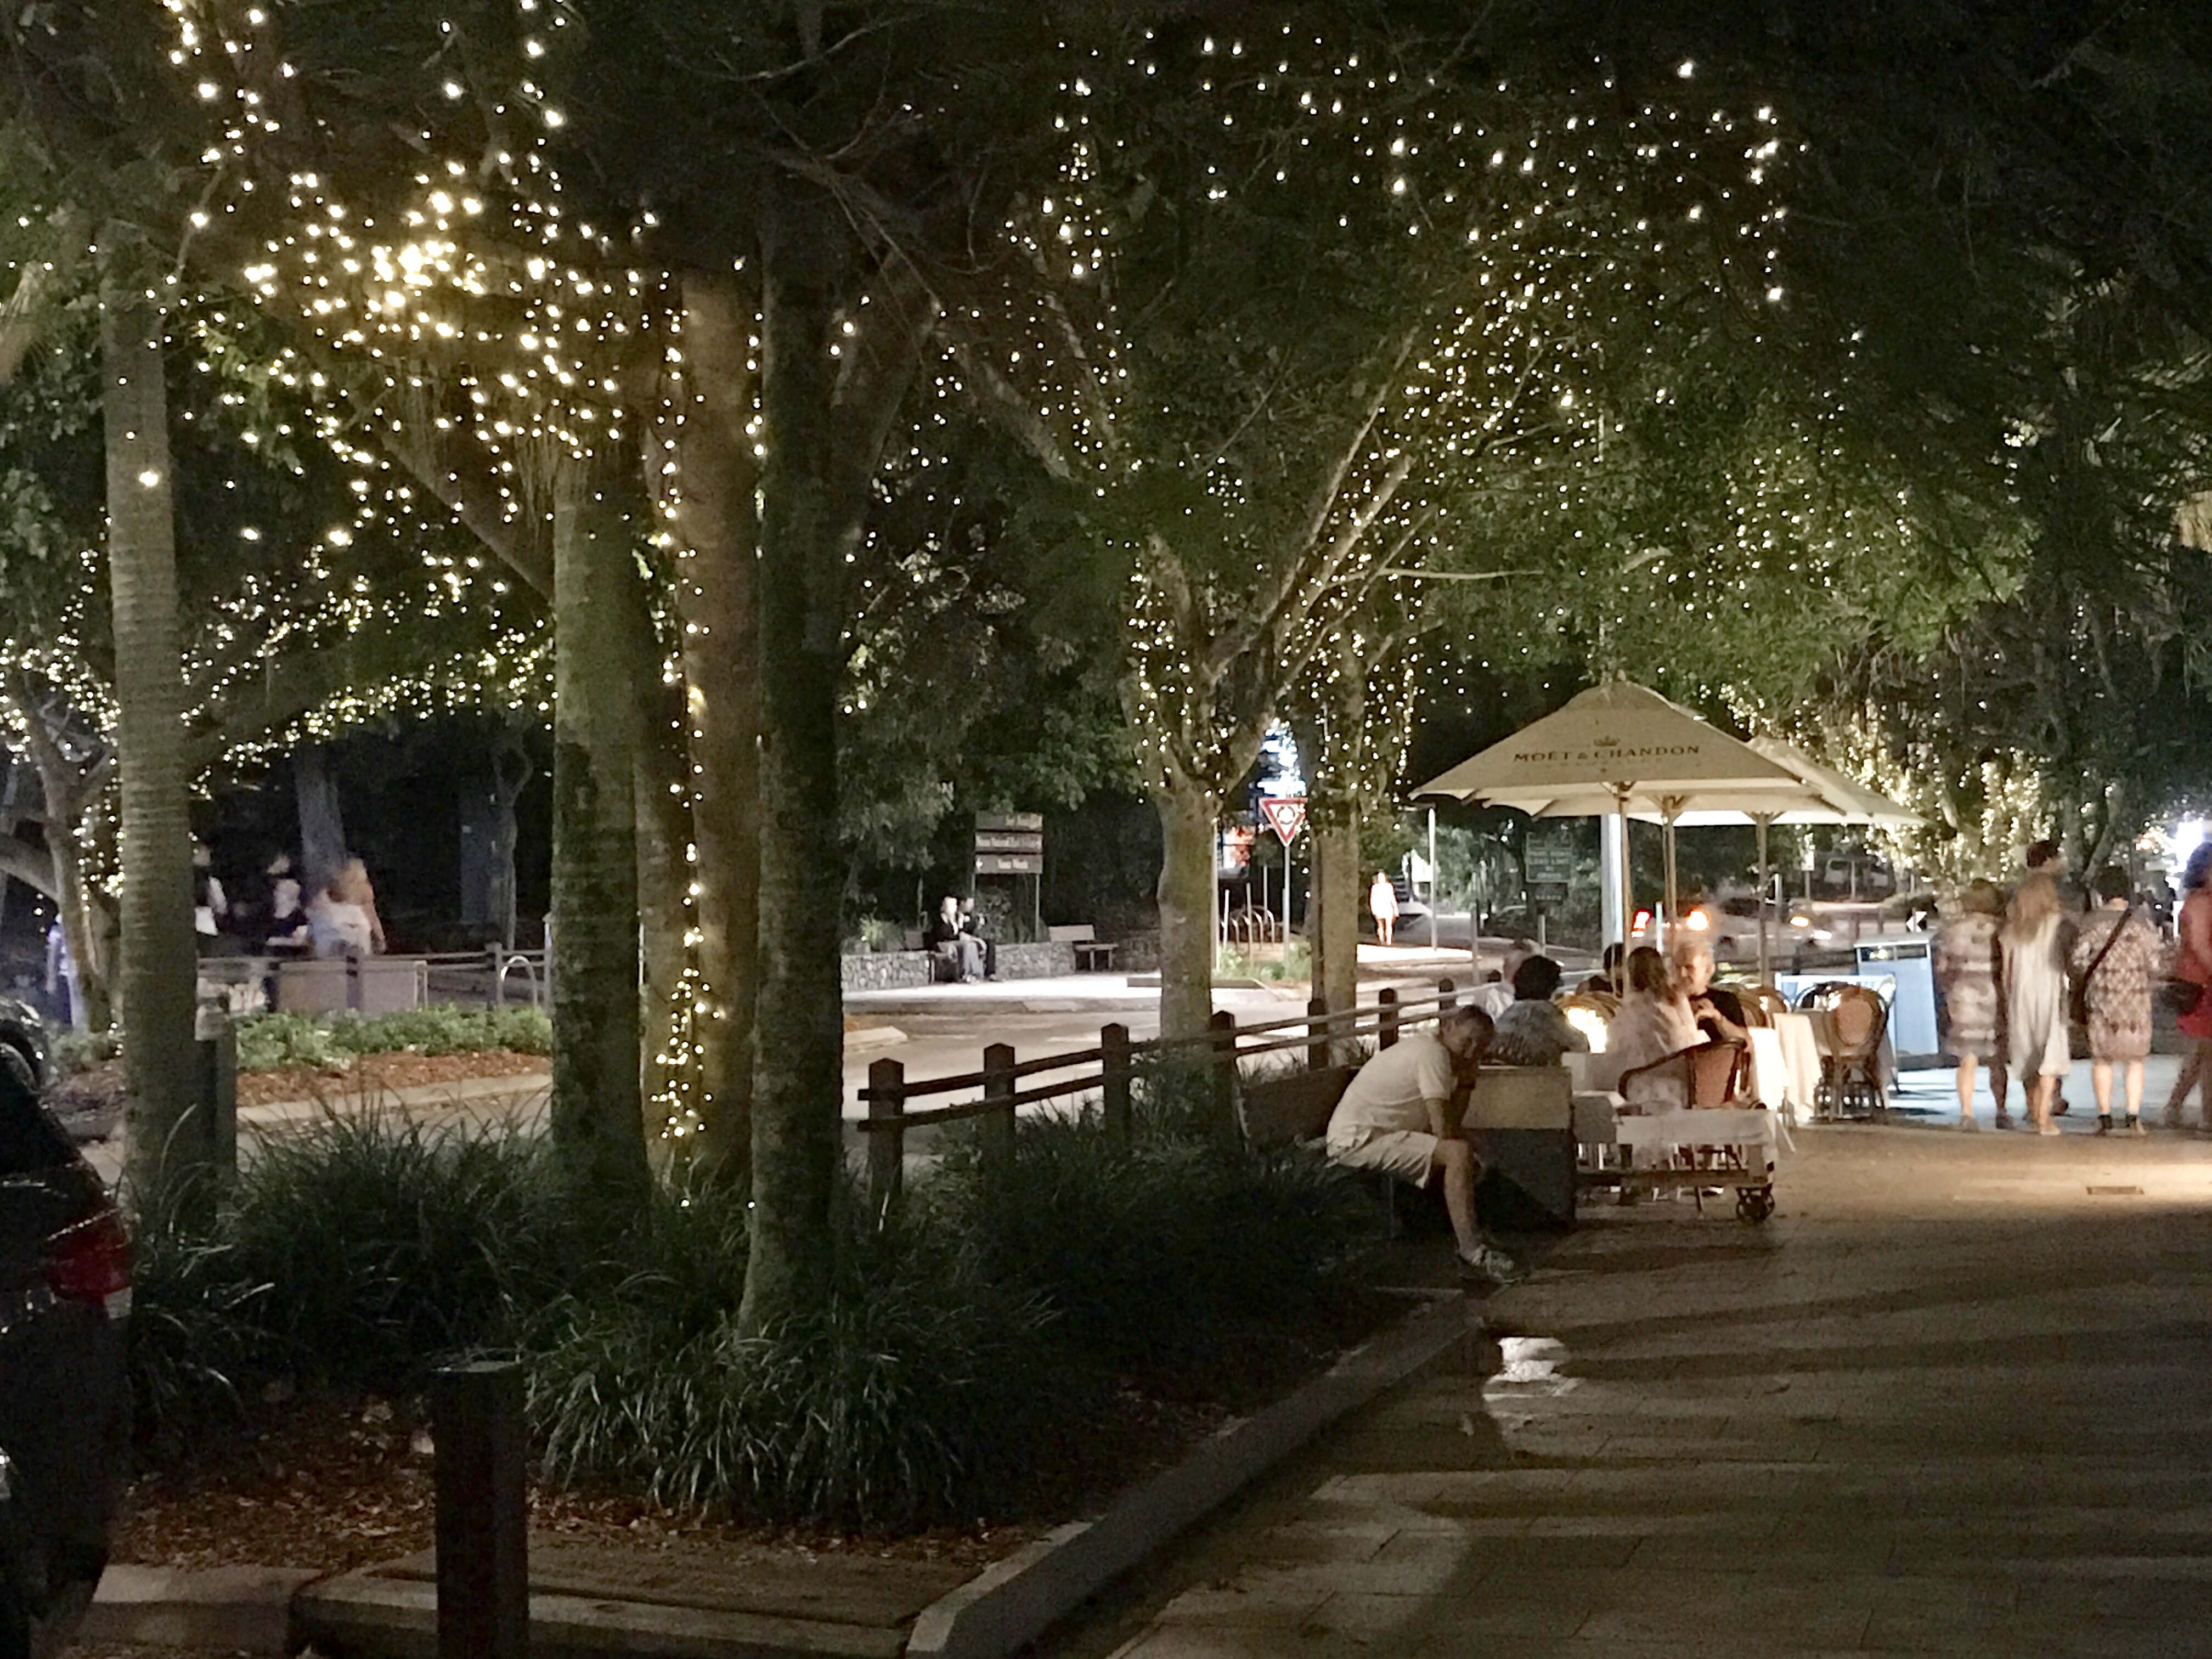 Hastings Street, one of the attractions in Noosa Heads